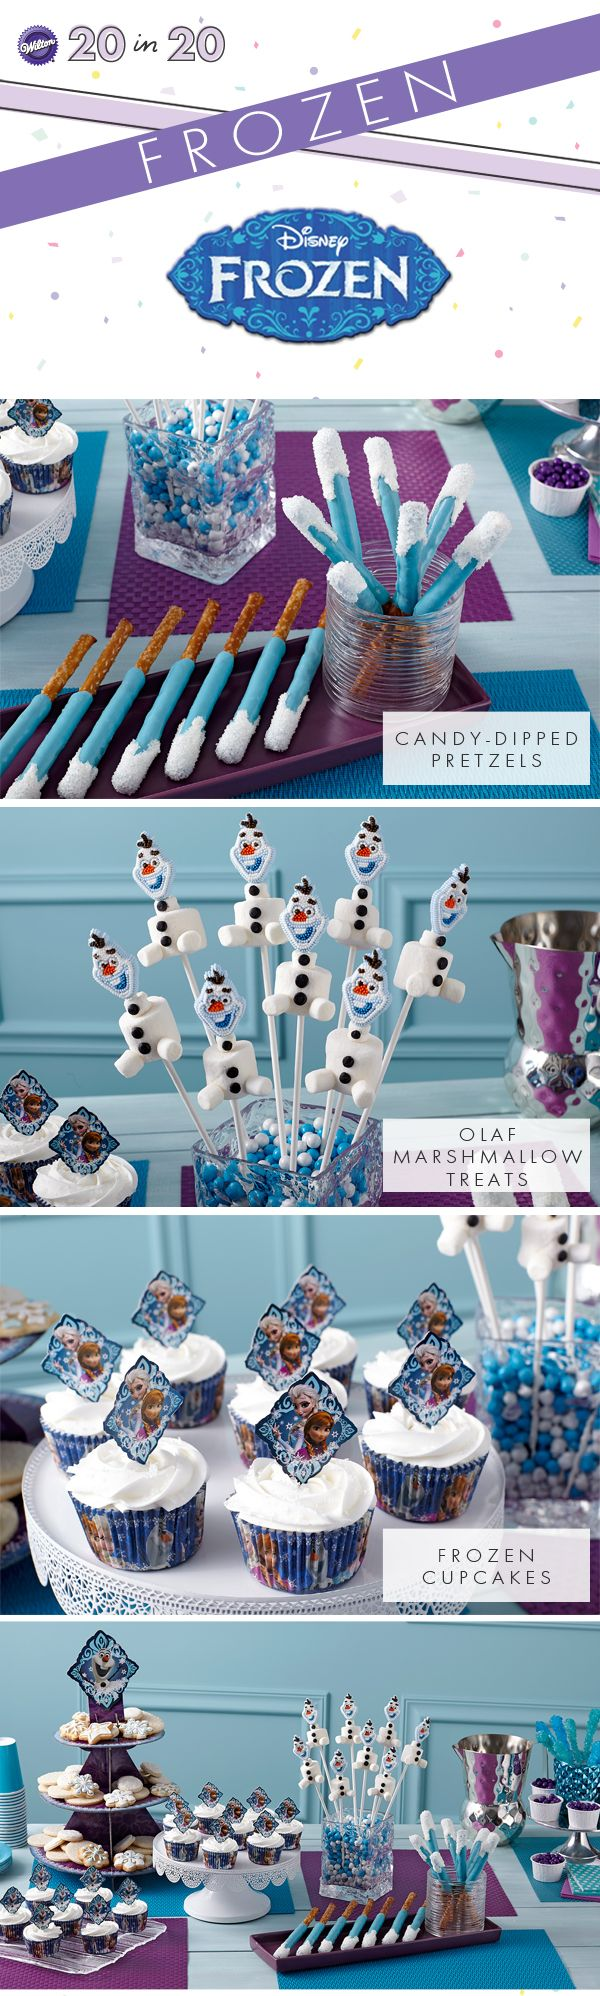 We have the coolest Frozen products and ideas so you can celebrate with Anna, Elsa, and the rest of the Frozen gang all year long.